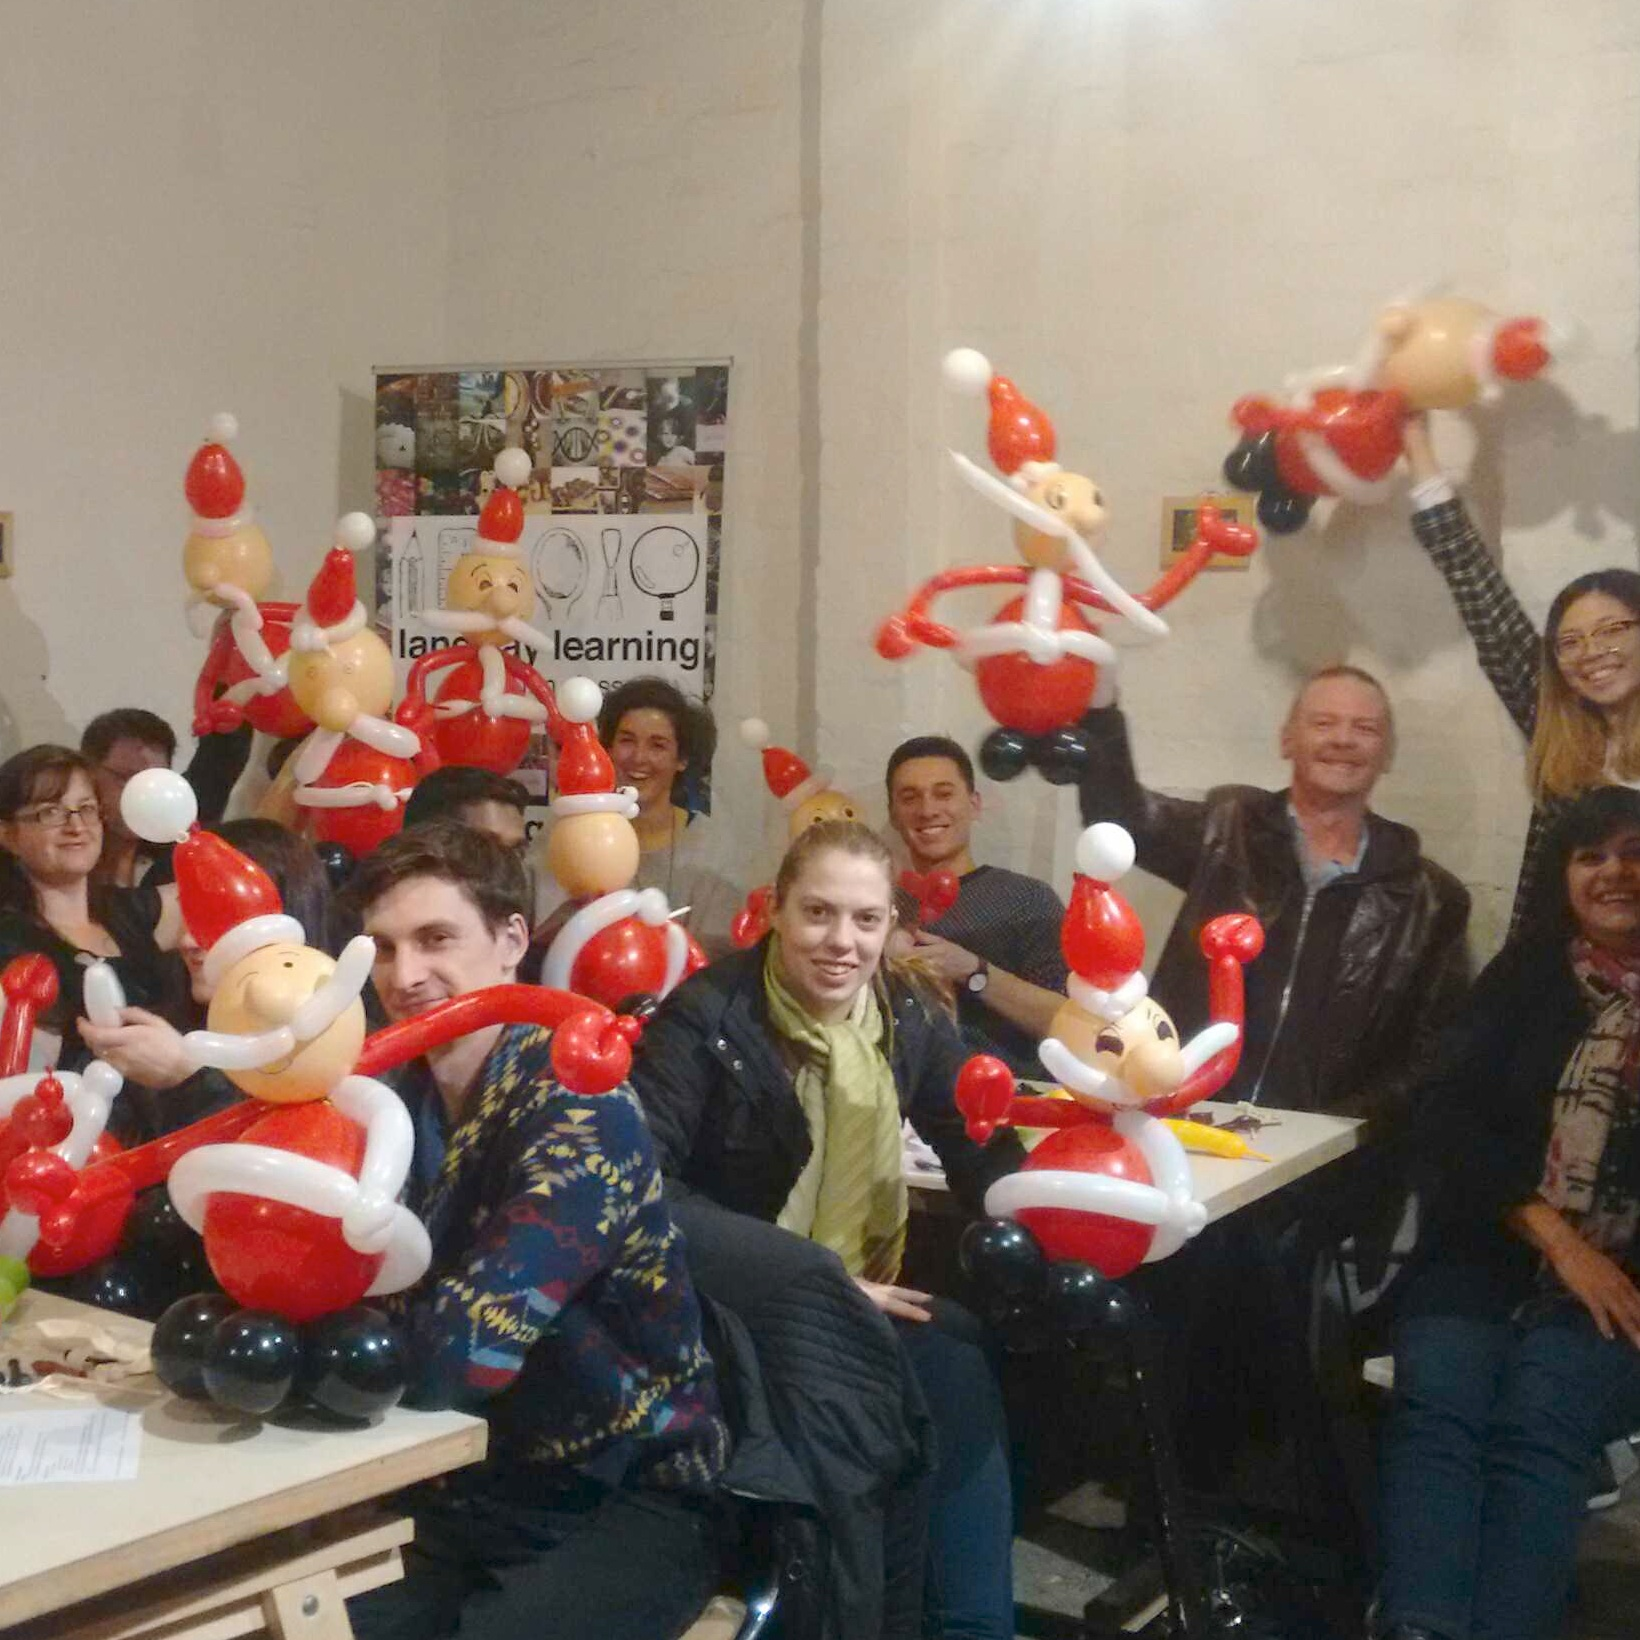 People showing their balloon Santa Clauses